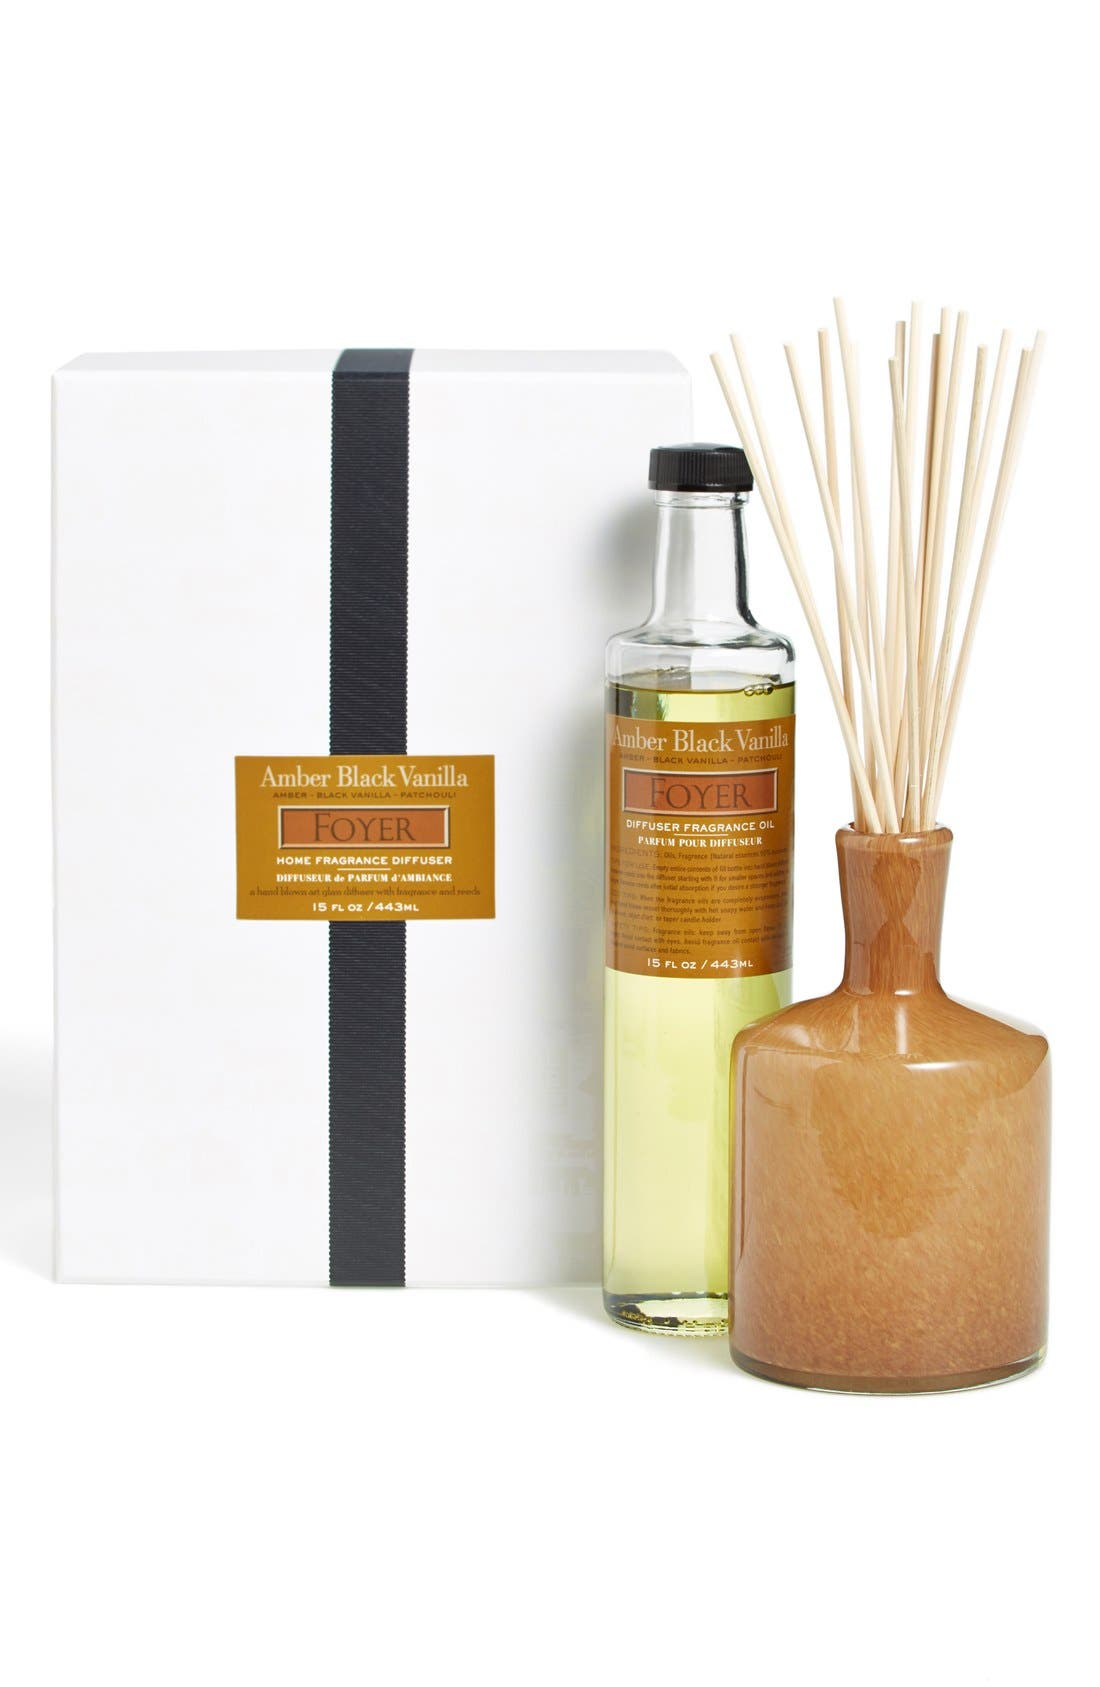 'Amber Black Vanilla - Foyer' Fragrance Diffuser,                             Alternate thumbnail 2, color,                             No Color